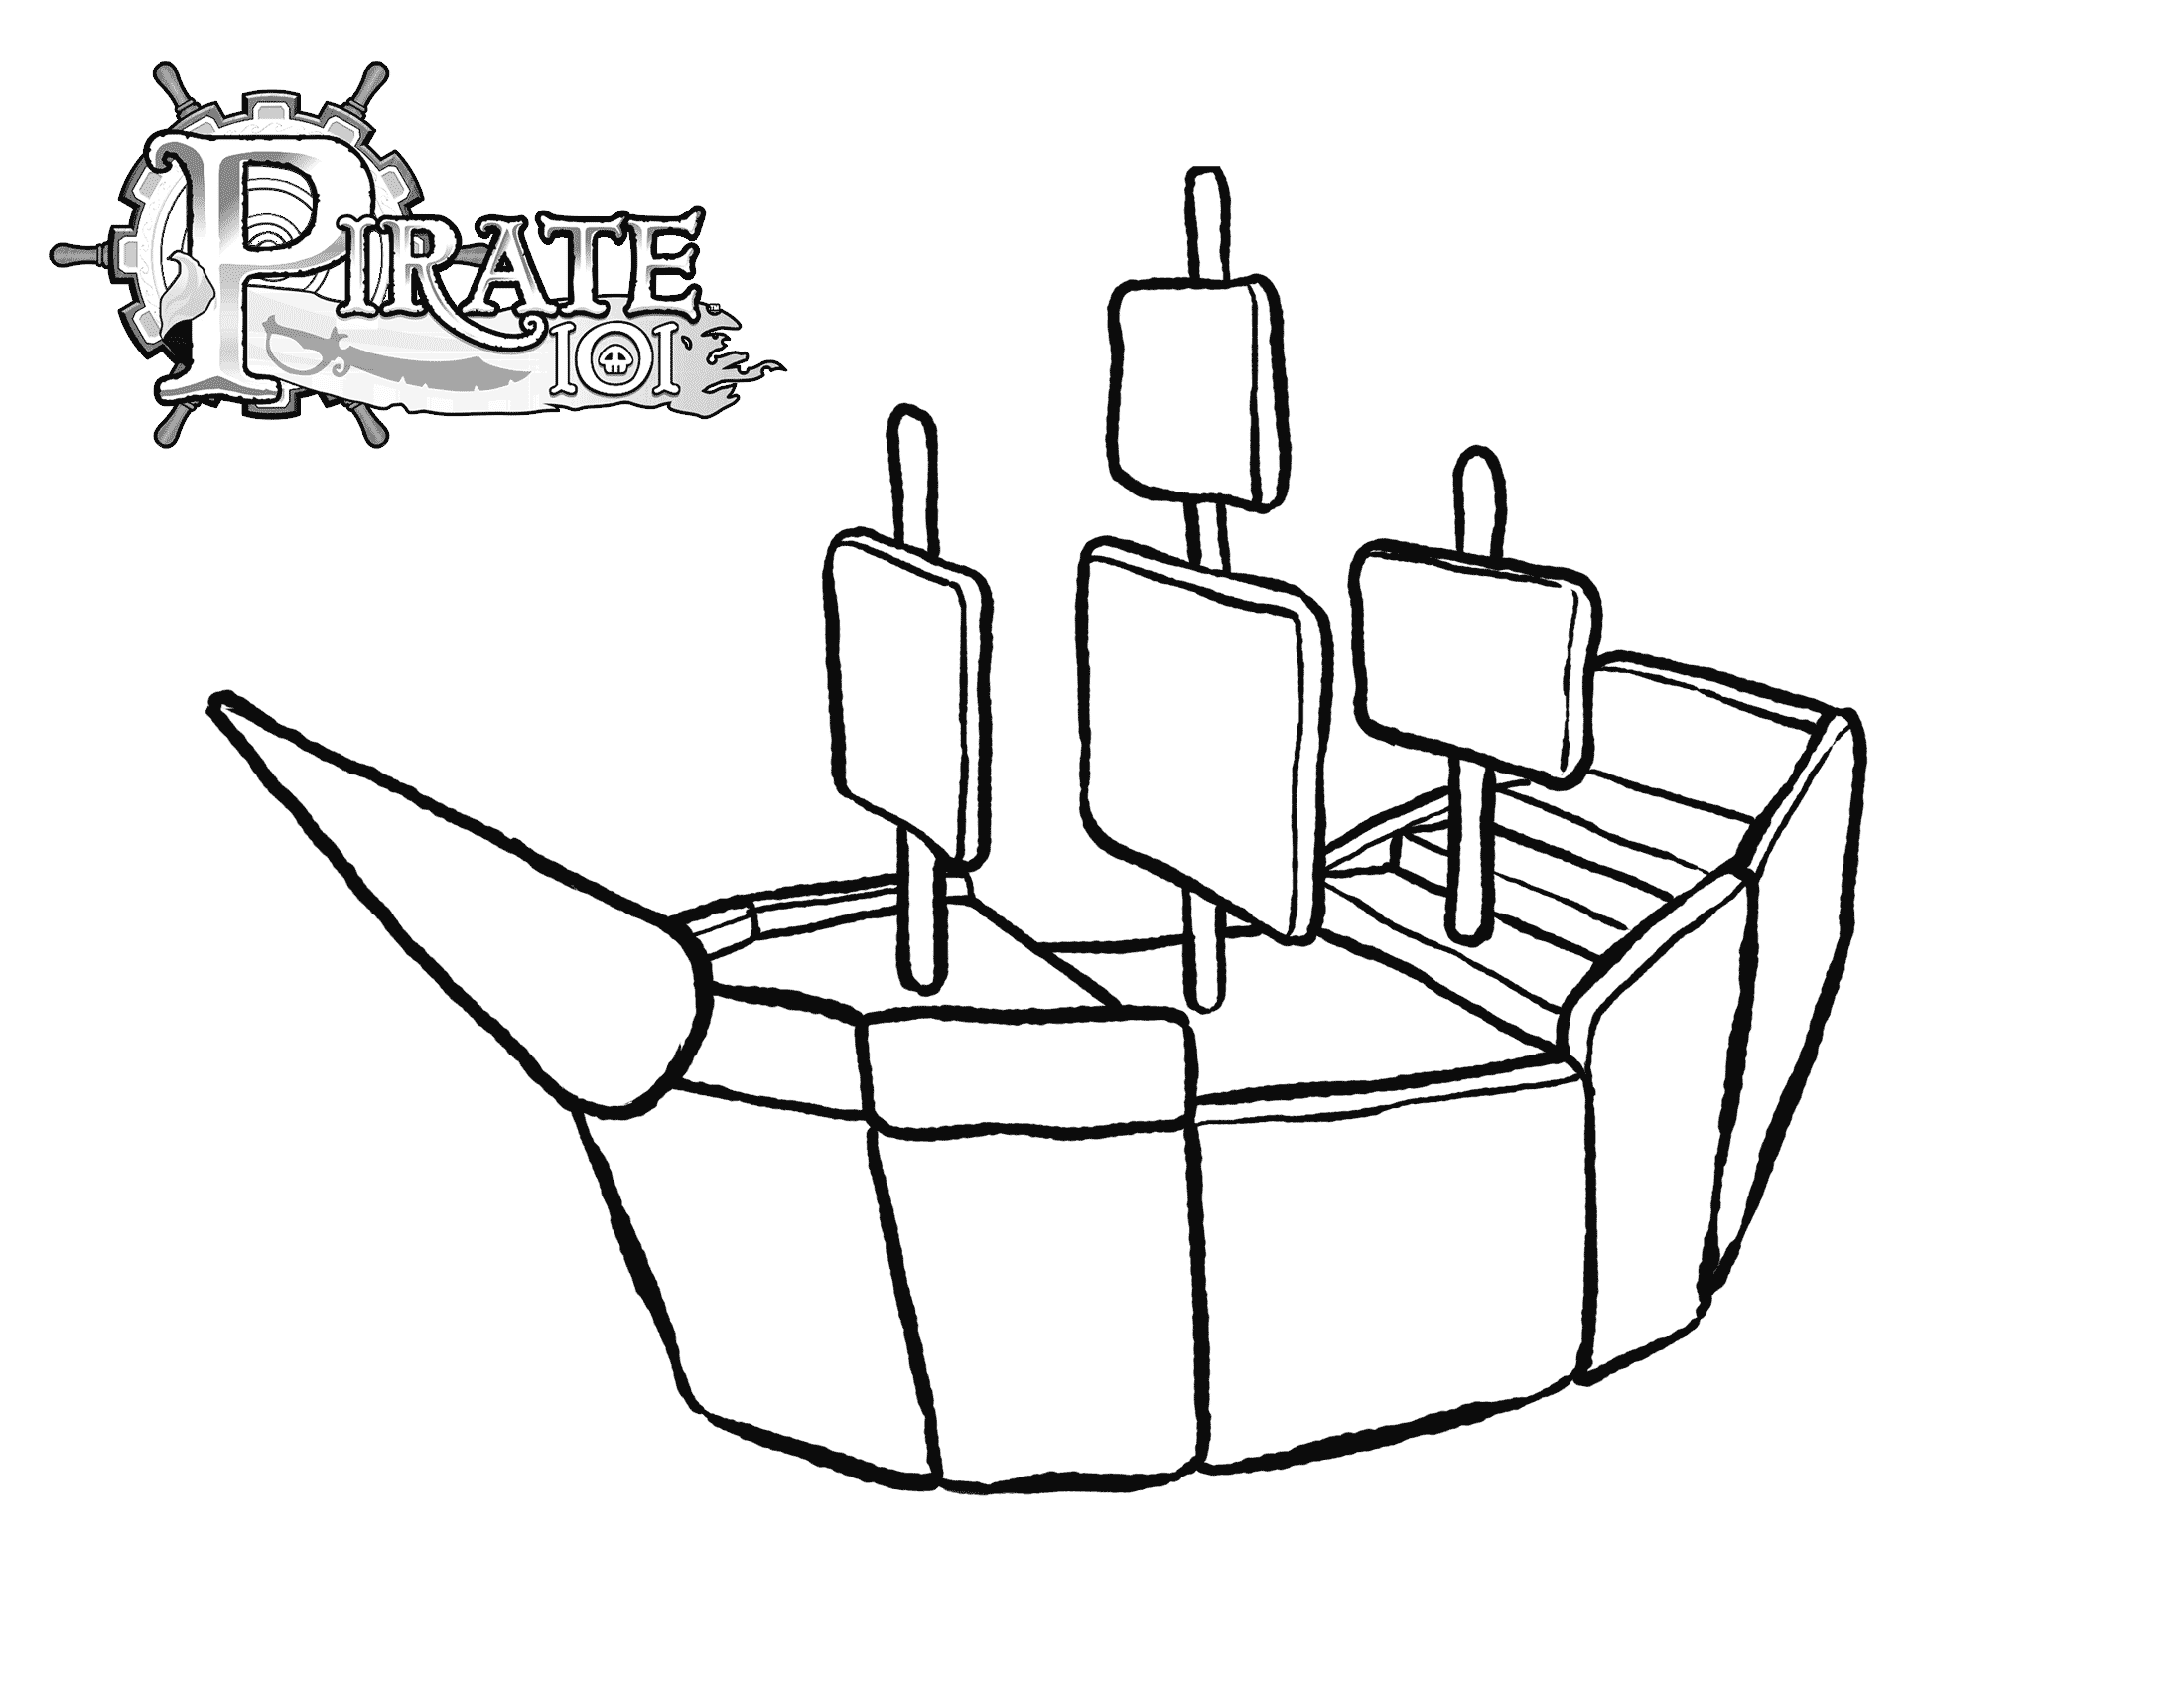 pirate ship sails template - the gallery for pirate ship cut out template